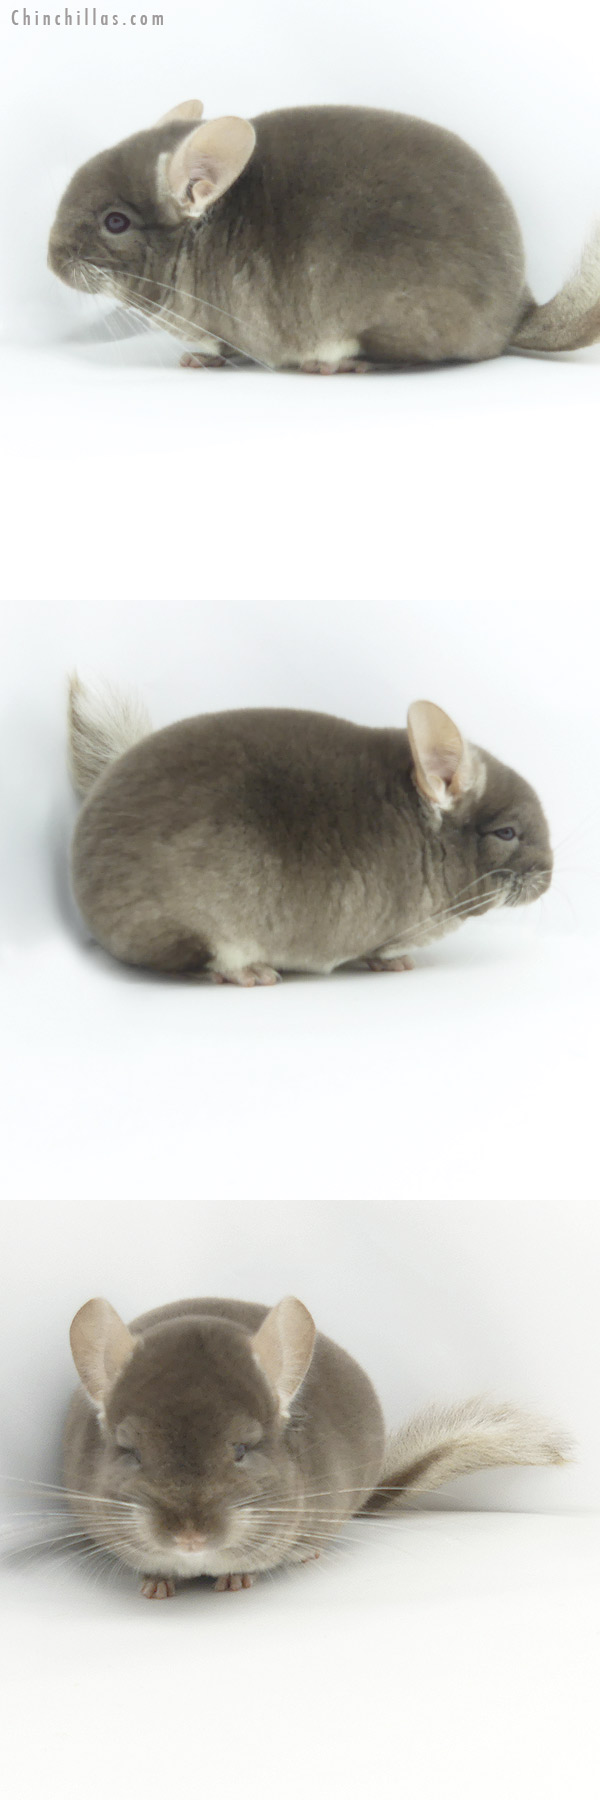 19383 Blocky Brevi Type Show Quality TOV Beige Female Chinchilla